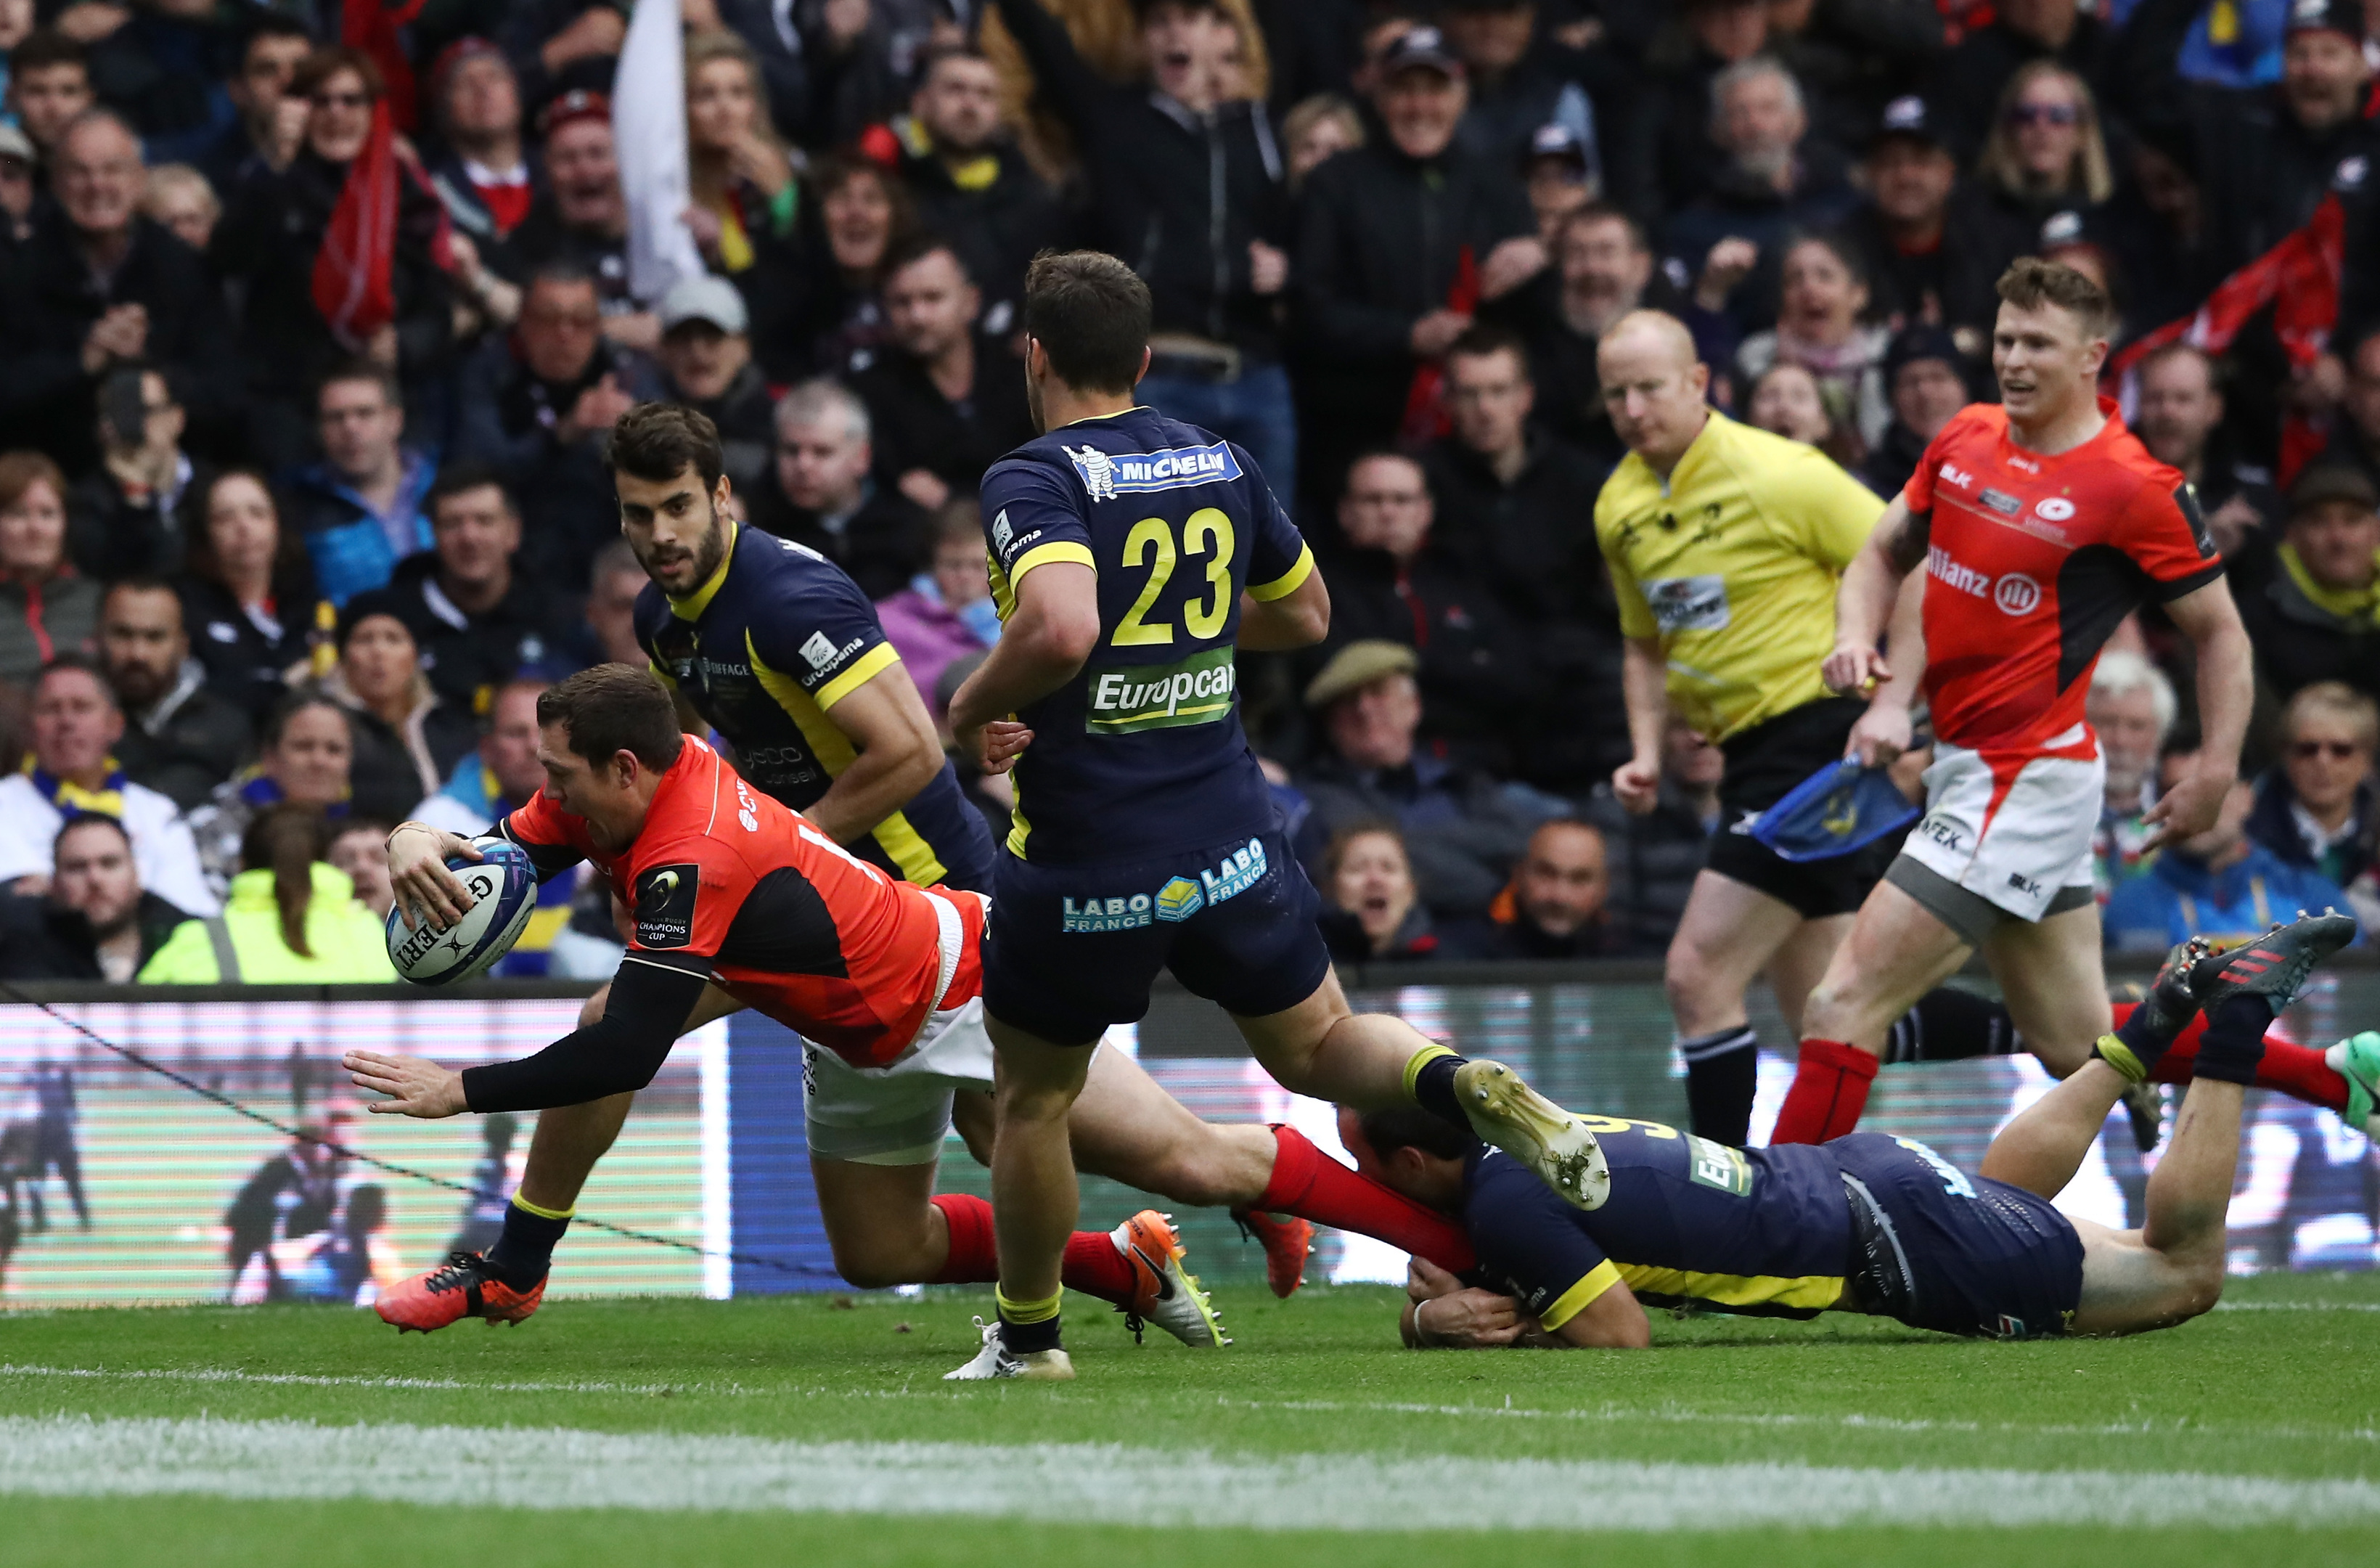 Alex Goode scores the crucial try to lift Saracens to retain the European Rugby Champions Cup.